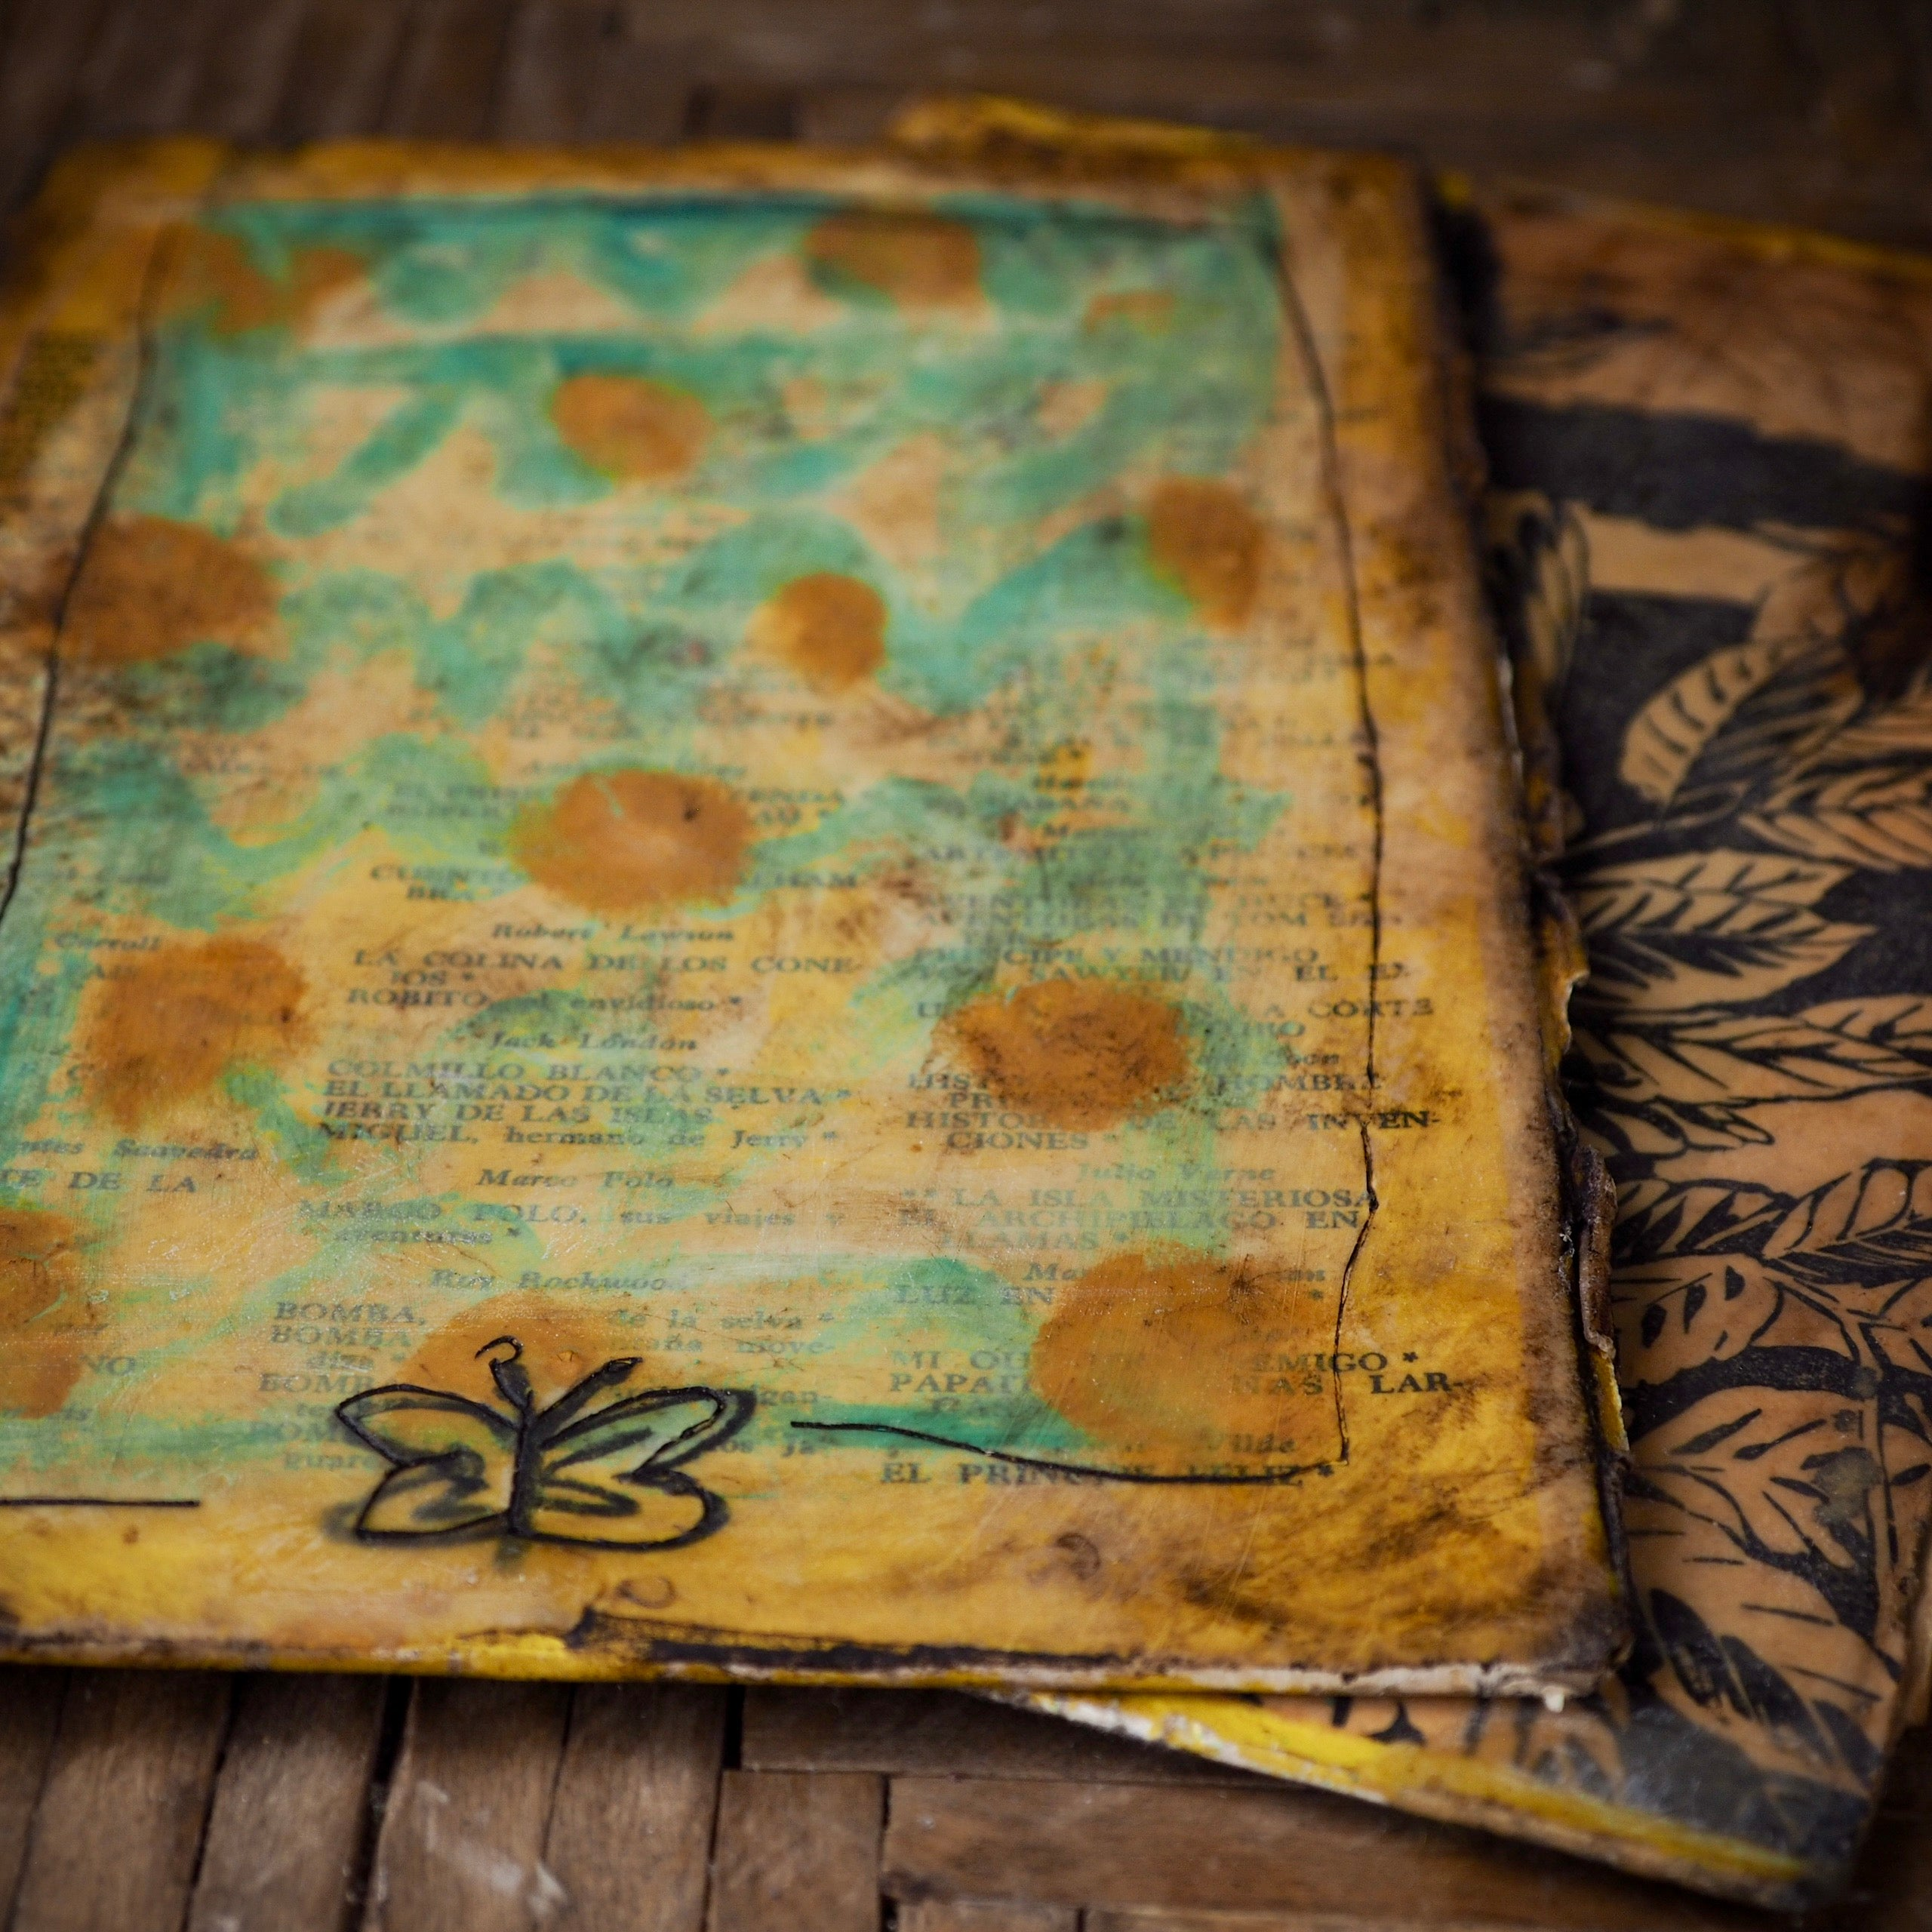 Beeswax dipped art journal original by Danita. Vintage book covered in bee wax, can be used as diary, art journal or writer's notes keeper.